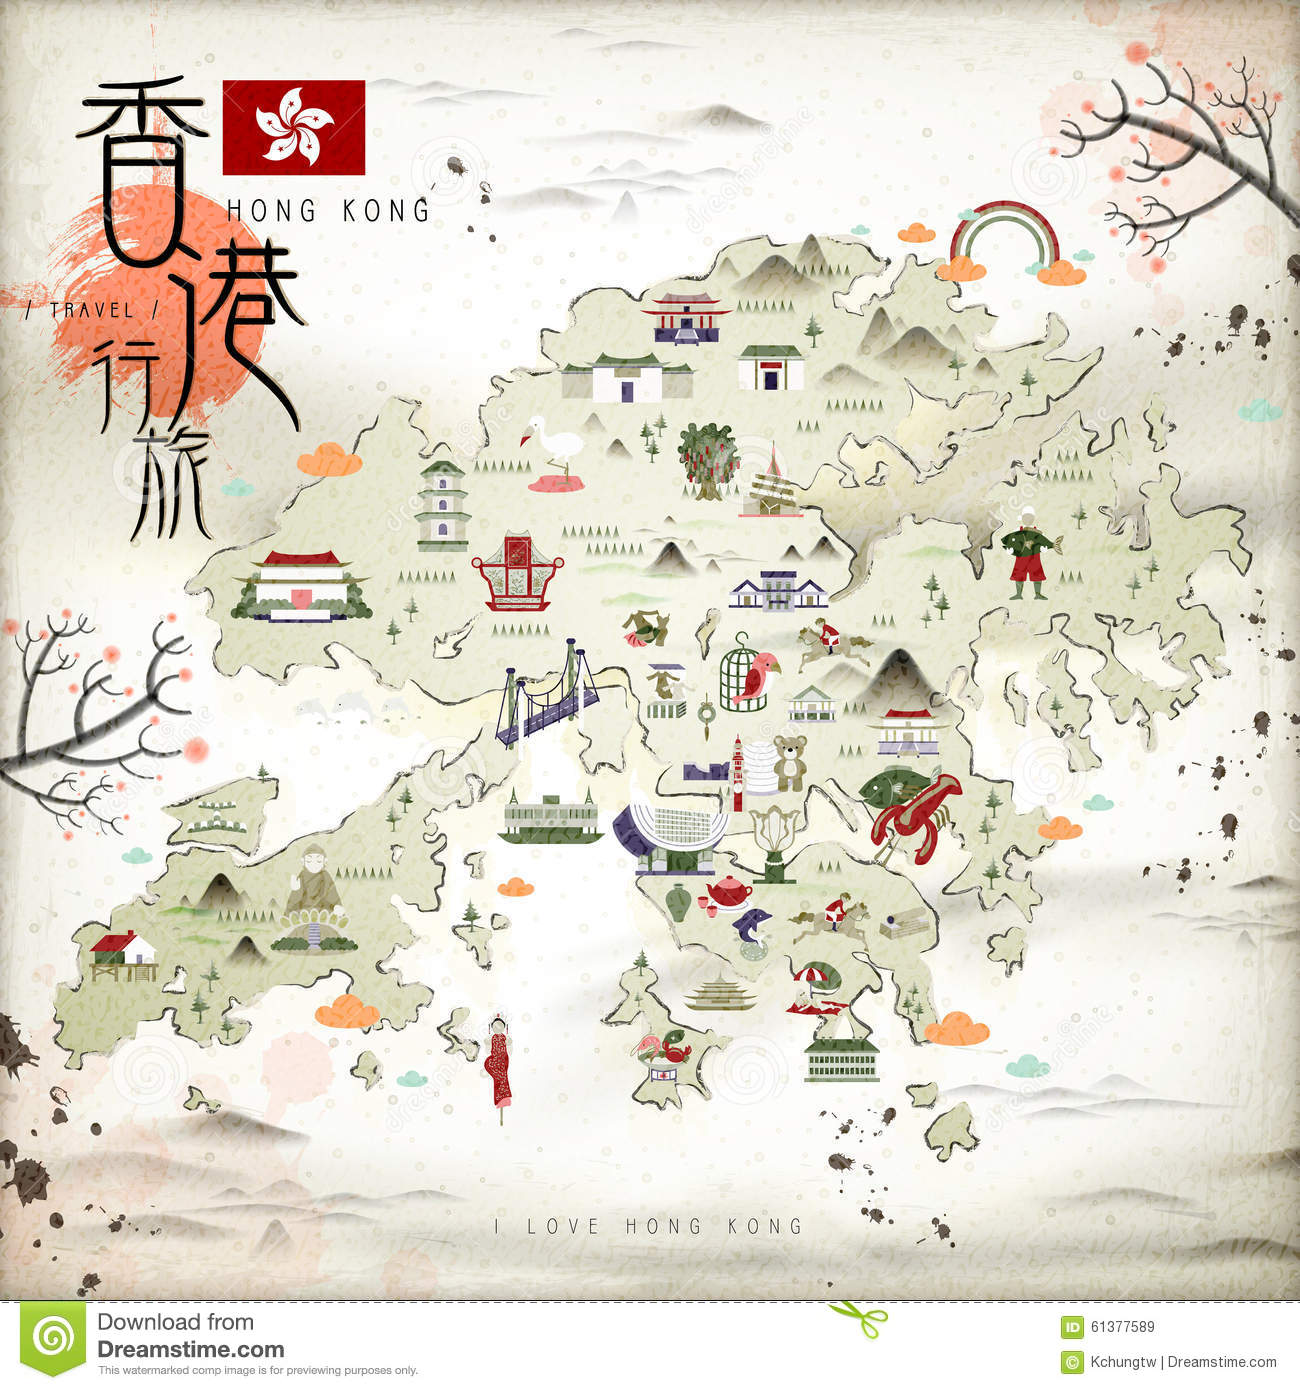 Hong Kong Travel Map Cartoon Vector CartoonDealercom 63059643